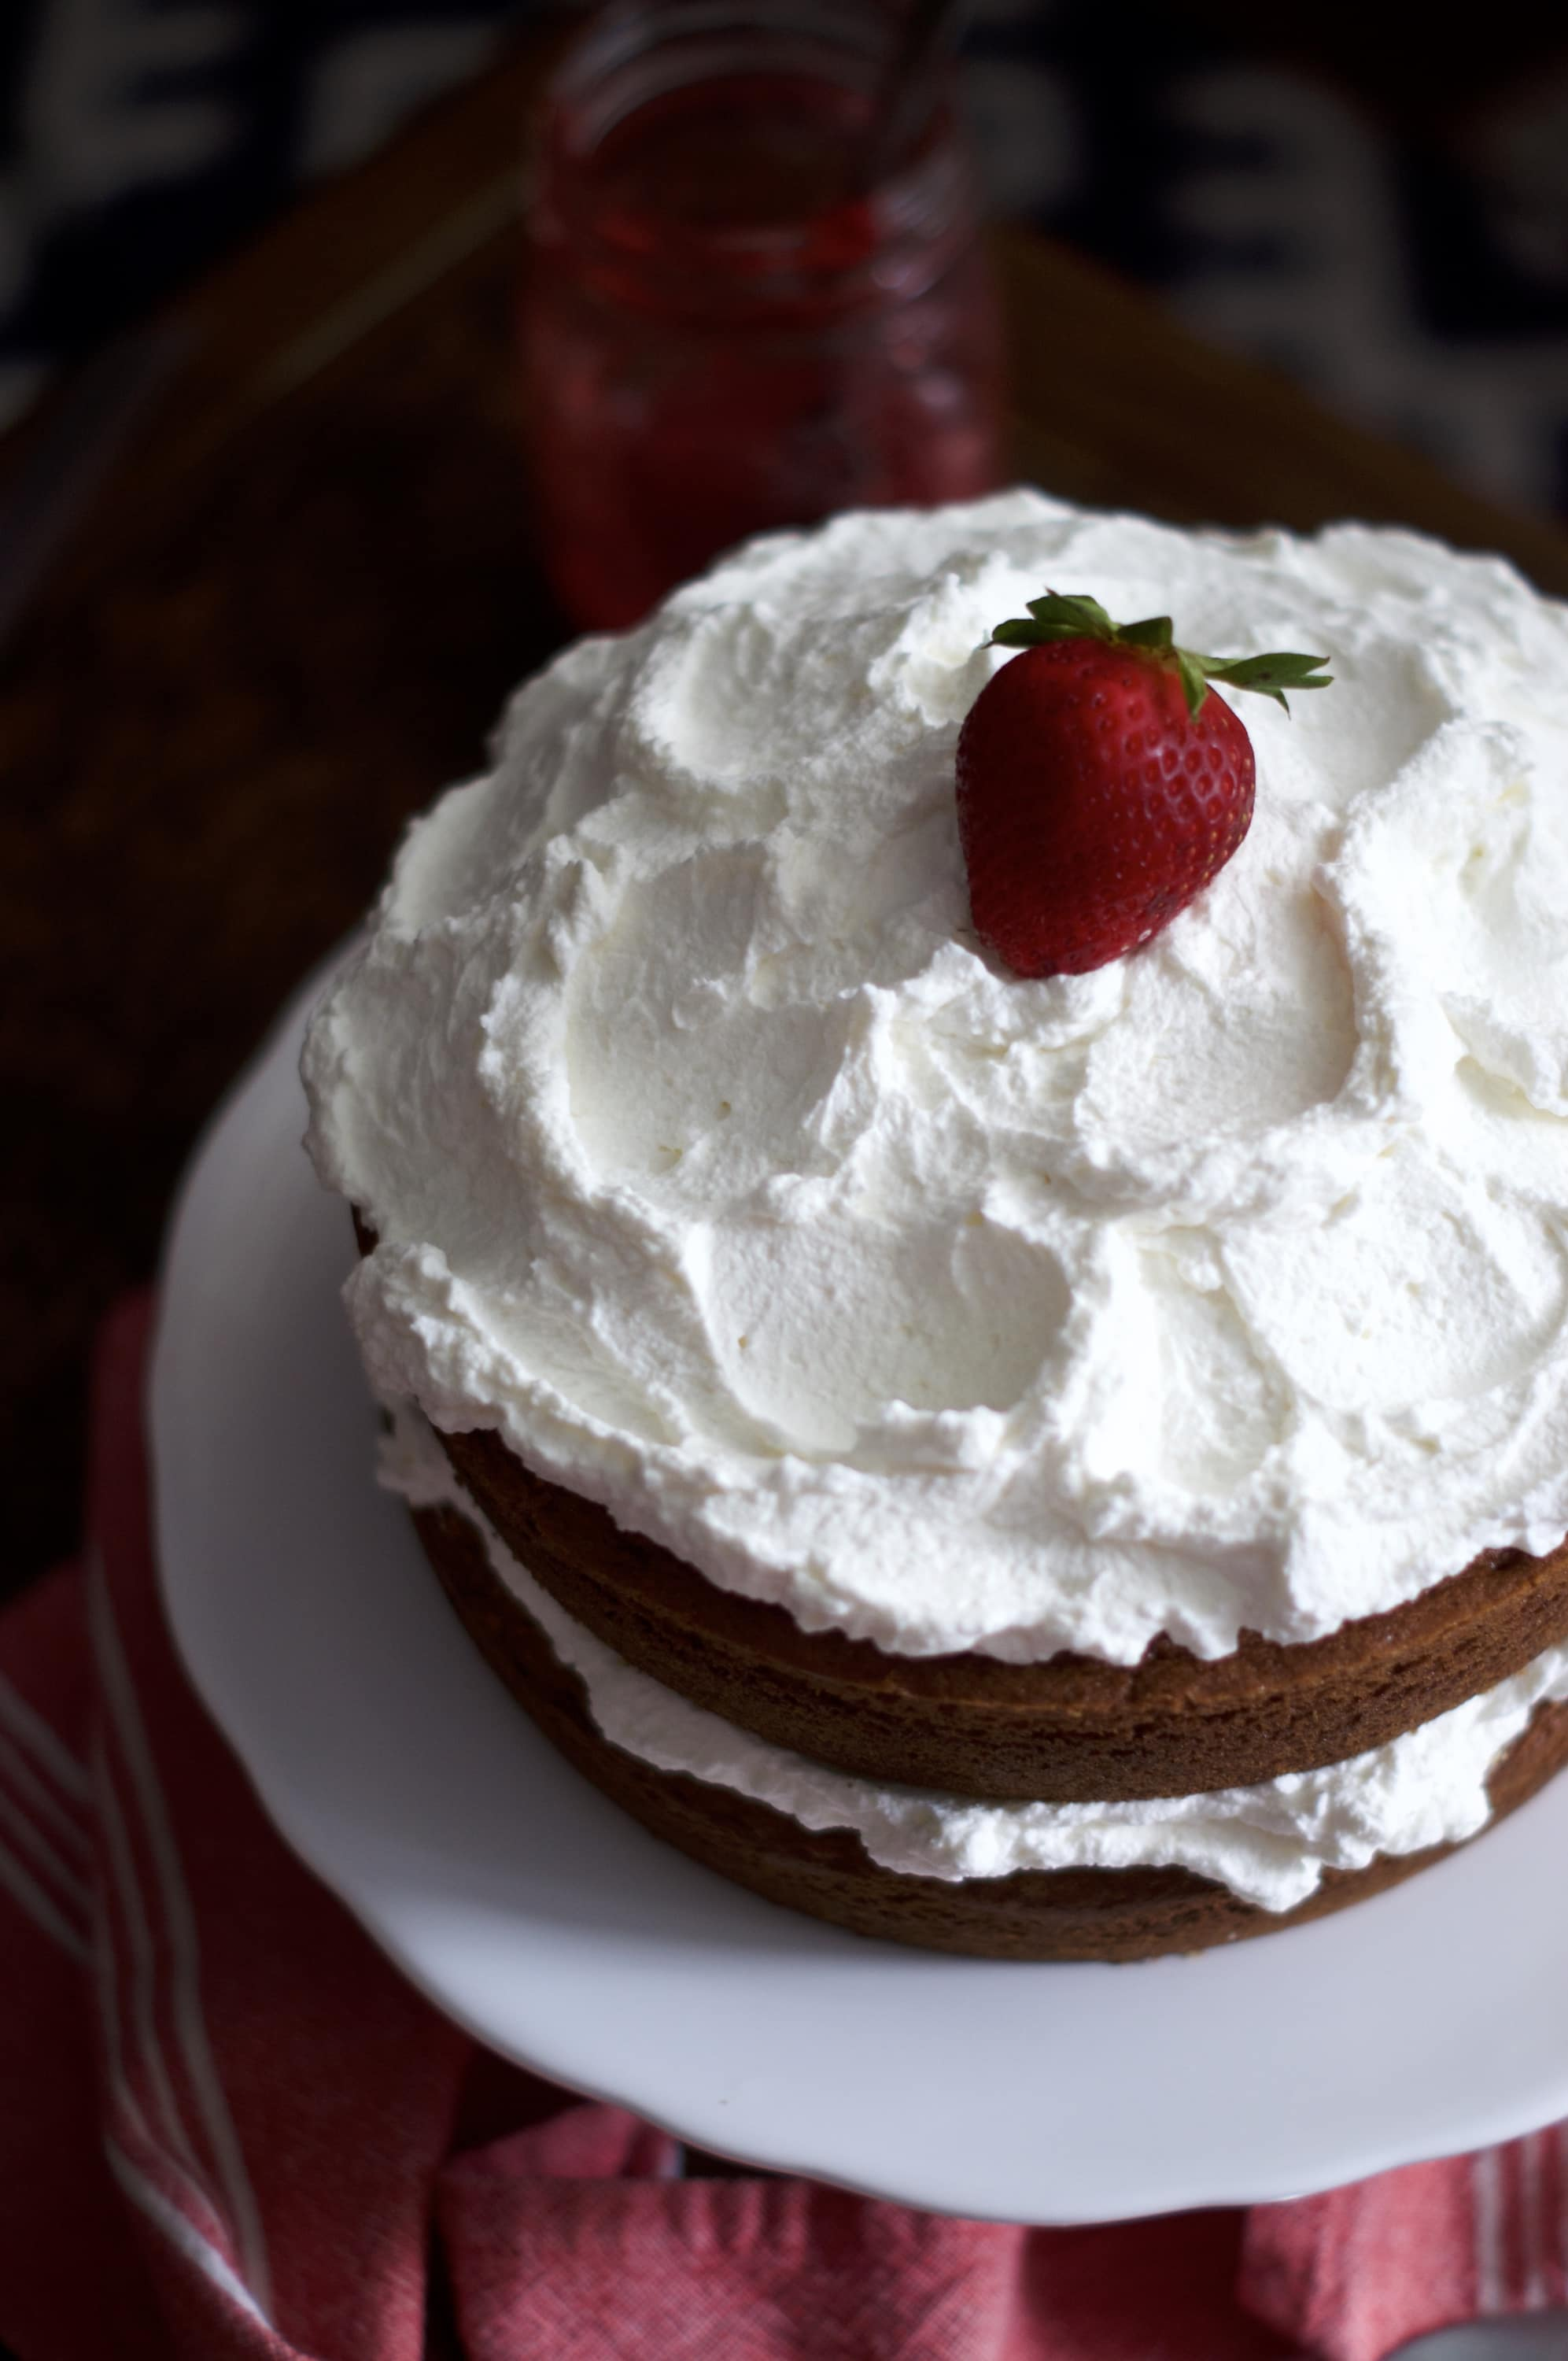 Berries & Cream Cake via Midwest Nice Blog